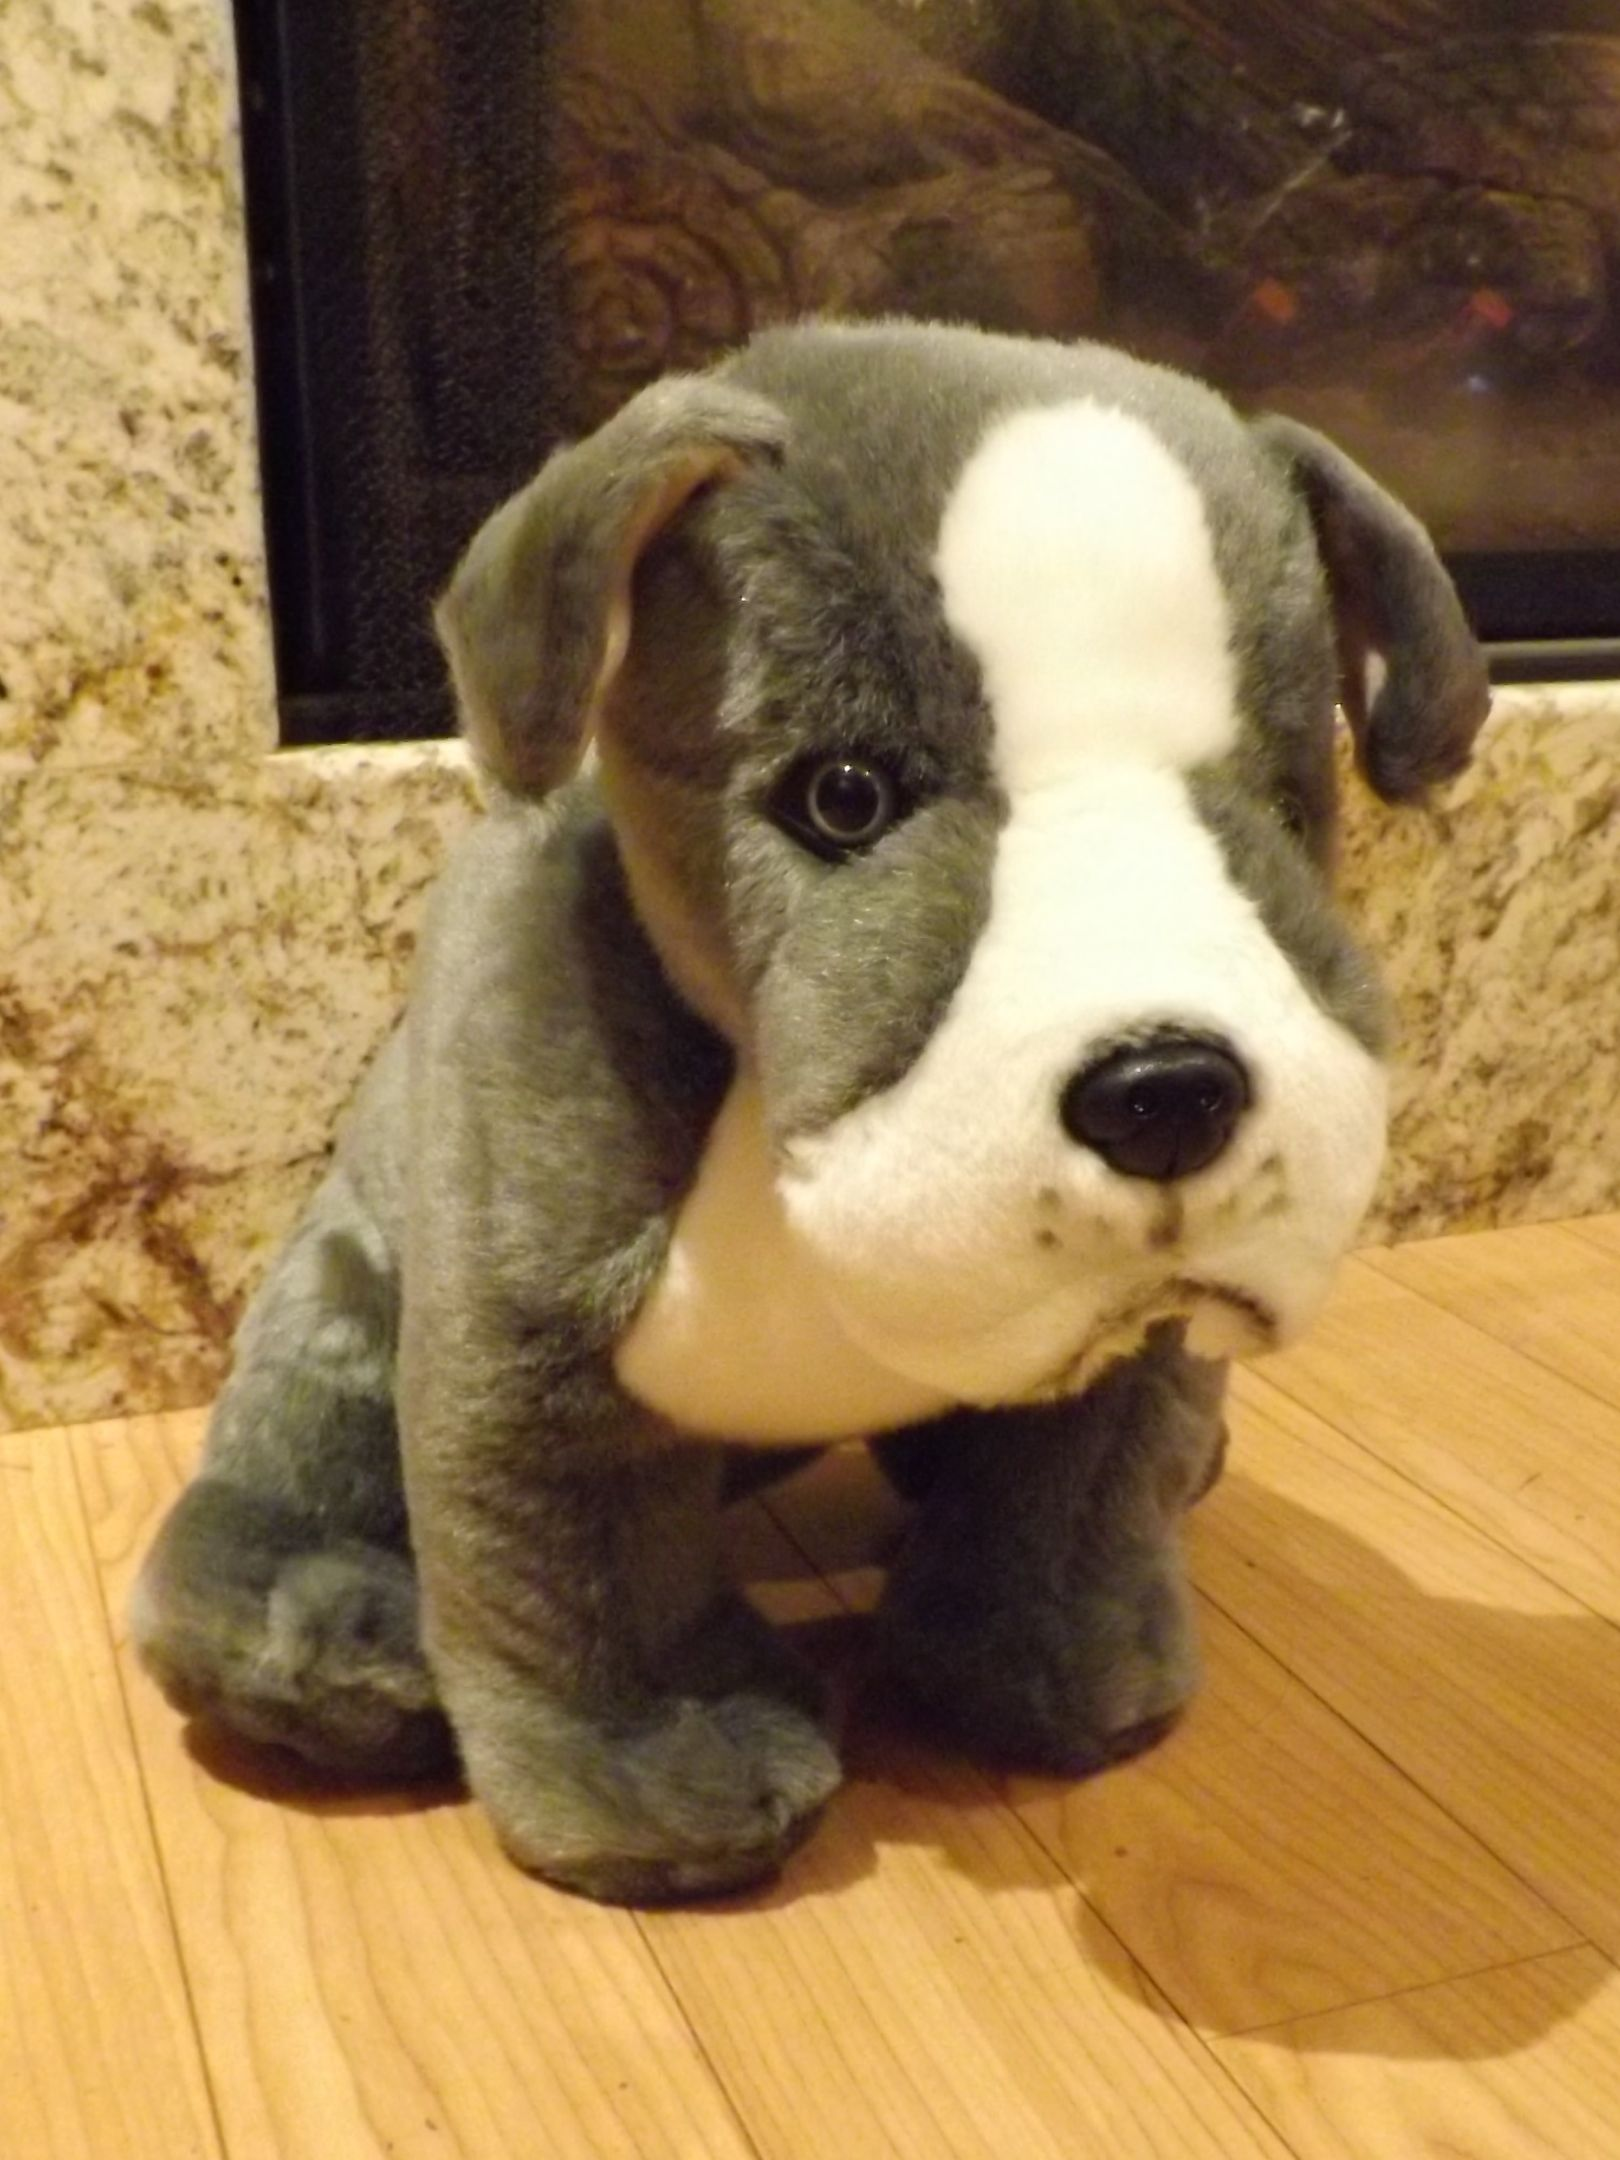 Pitbull Stuffed Animal Dog – Big Plush Toy Pitbull Terrier 16″